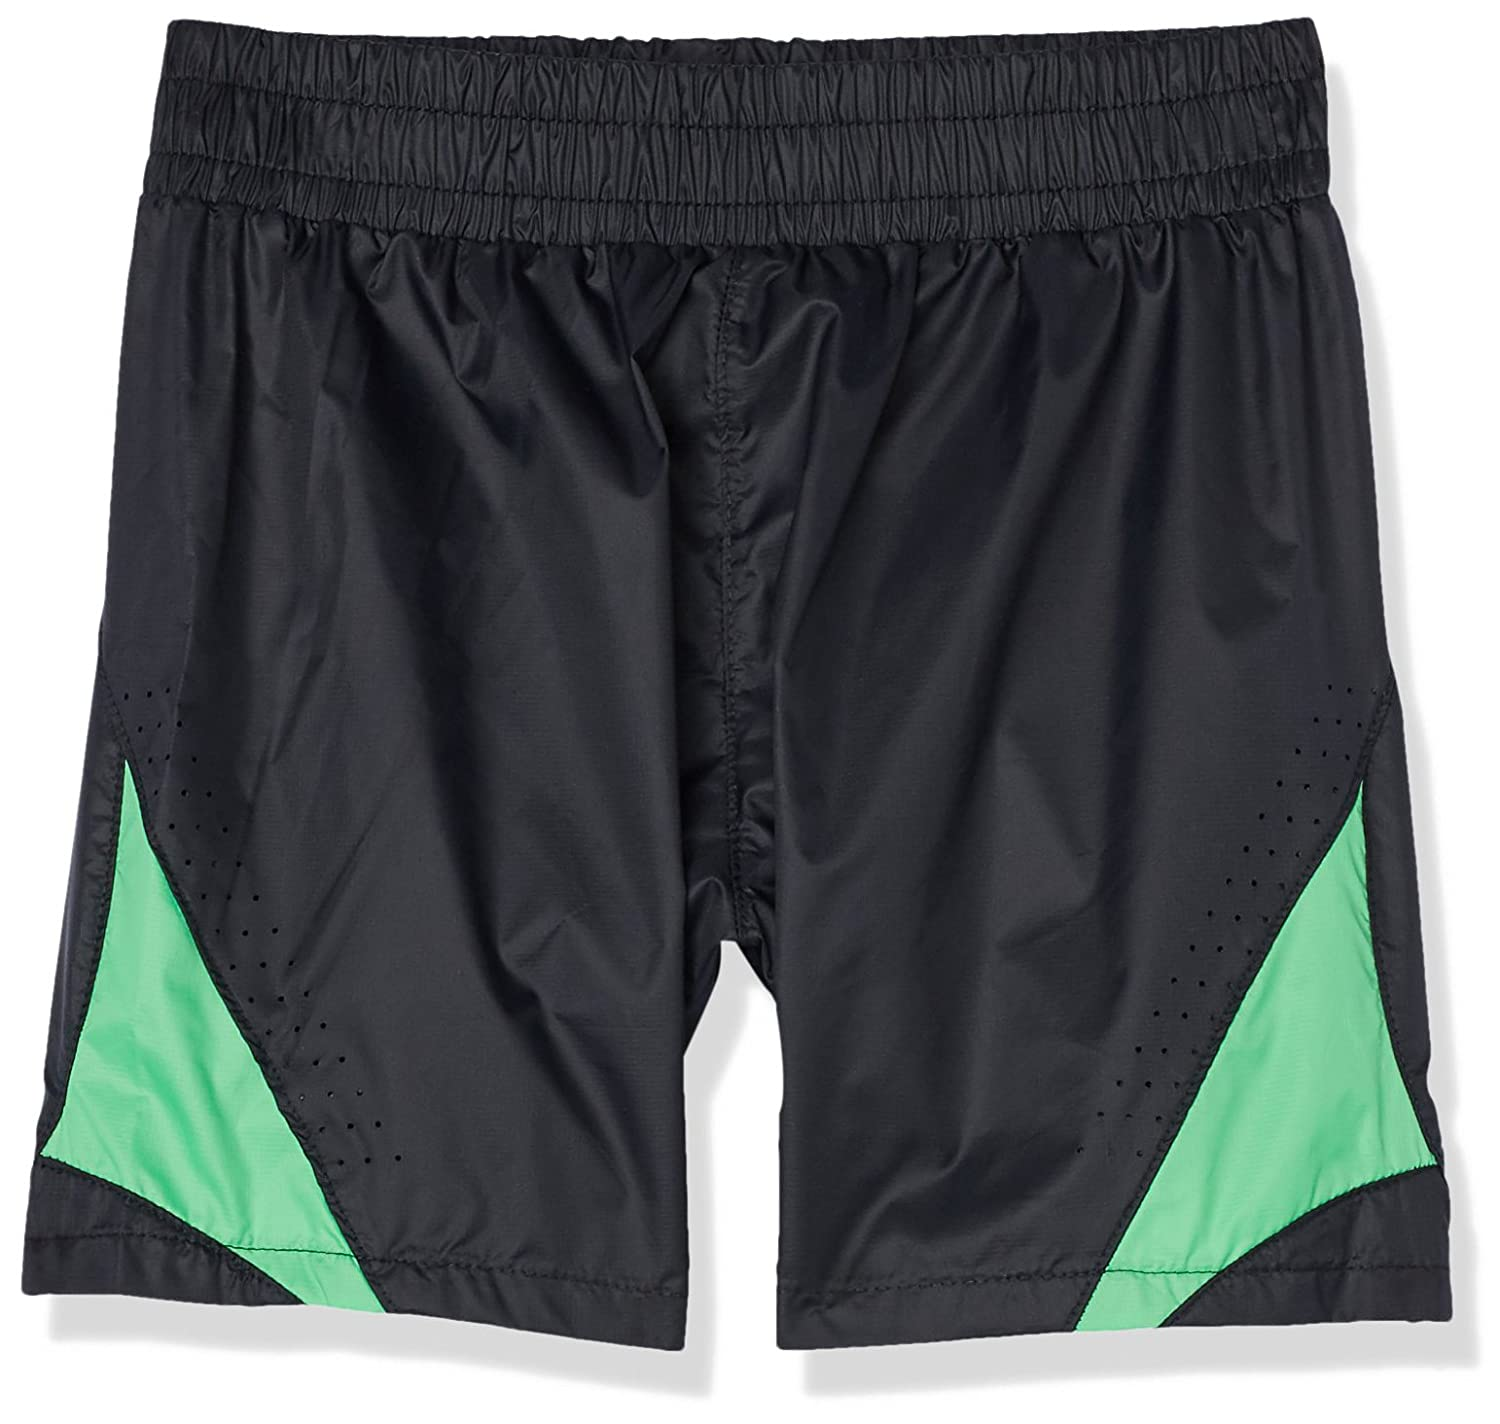 RED WAGON Boy's Sports Shorts SFP5-B07